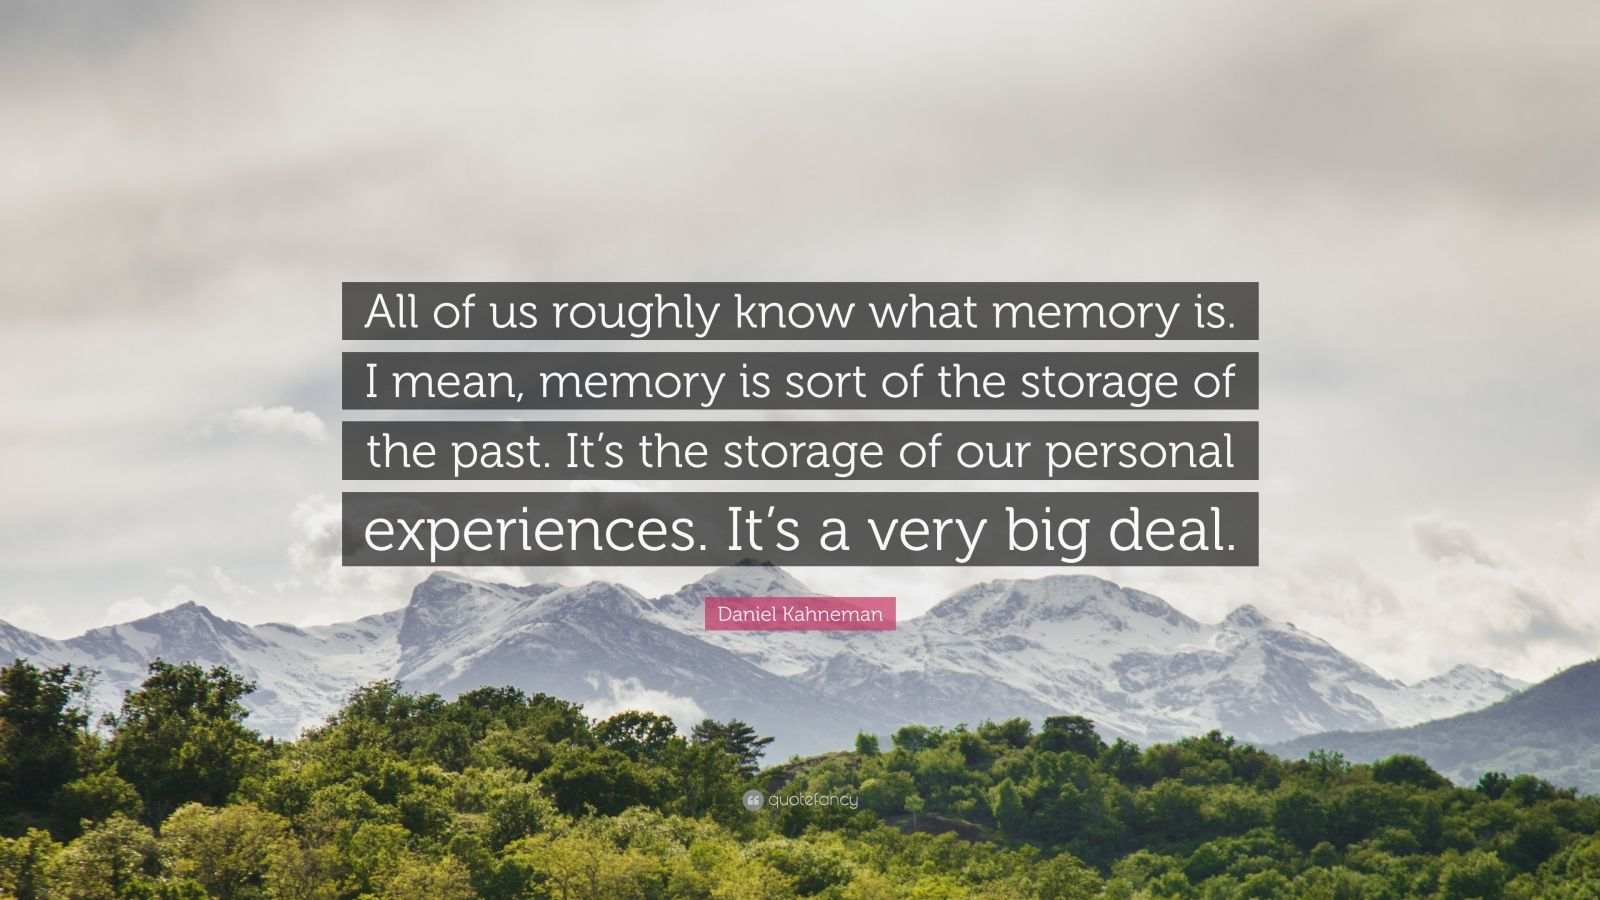 """Daniel Kahneman Quote: """"All of us roughly know what memory is. I mean, memory is sort of the storage of the past. It's the storage of our personal experiences. It's a very big deal."""""""